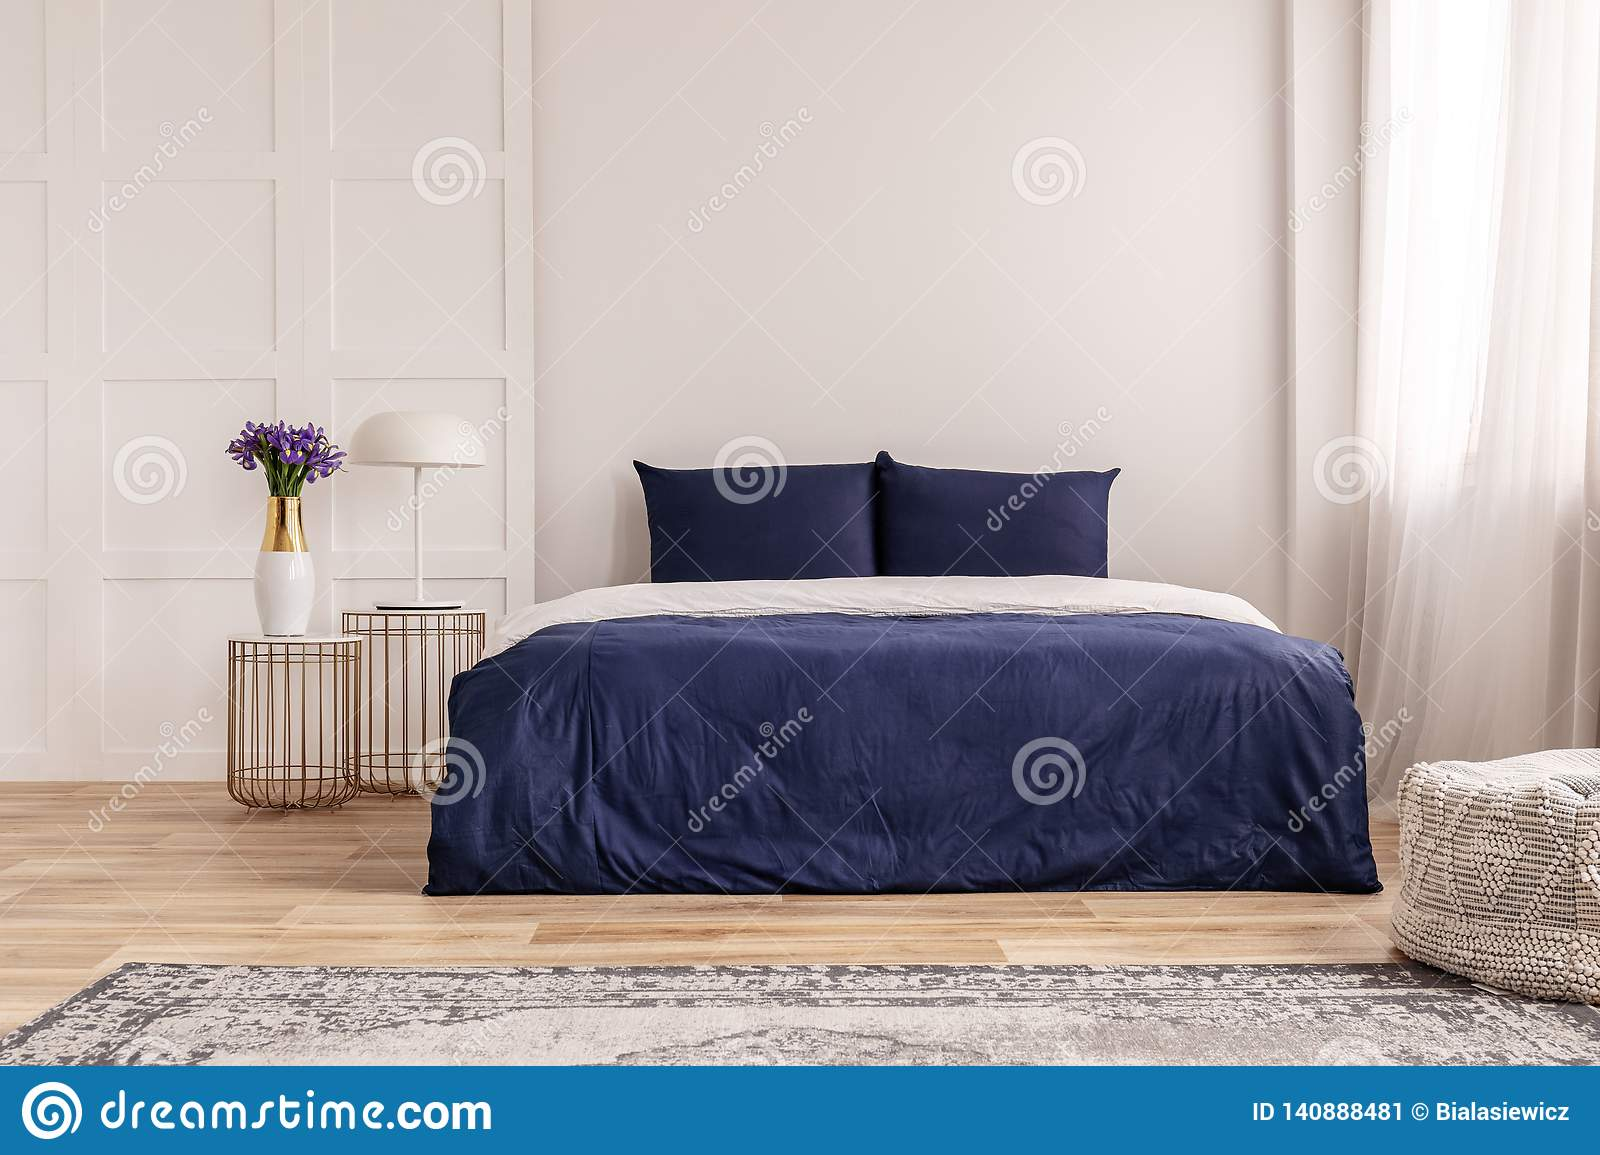 Simple Navy Blue And White Bedroom Interior Design Stock Image Image Of Flat Wall 140888481